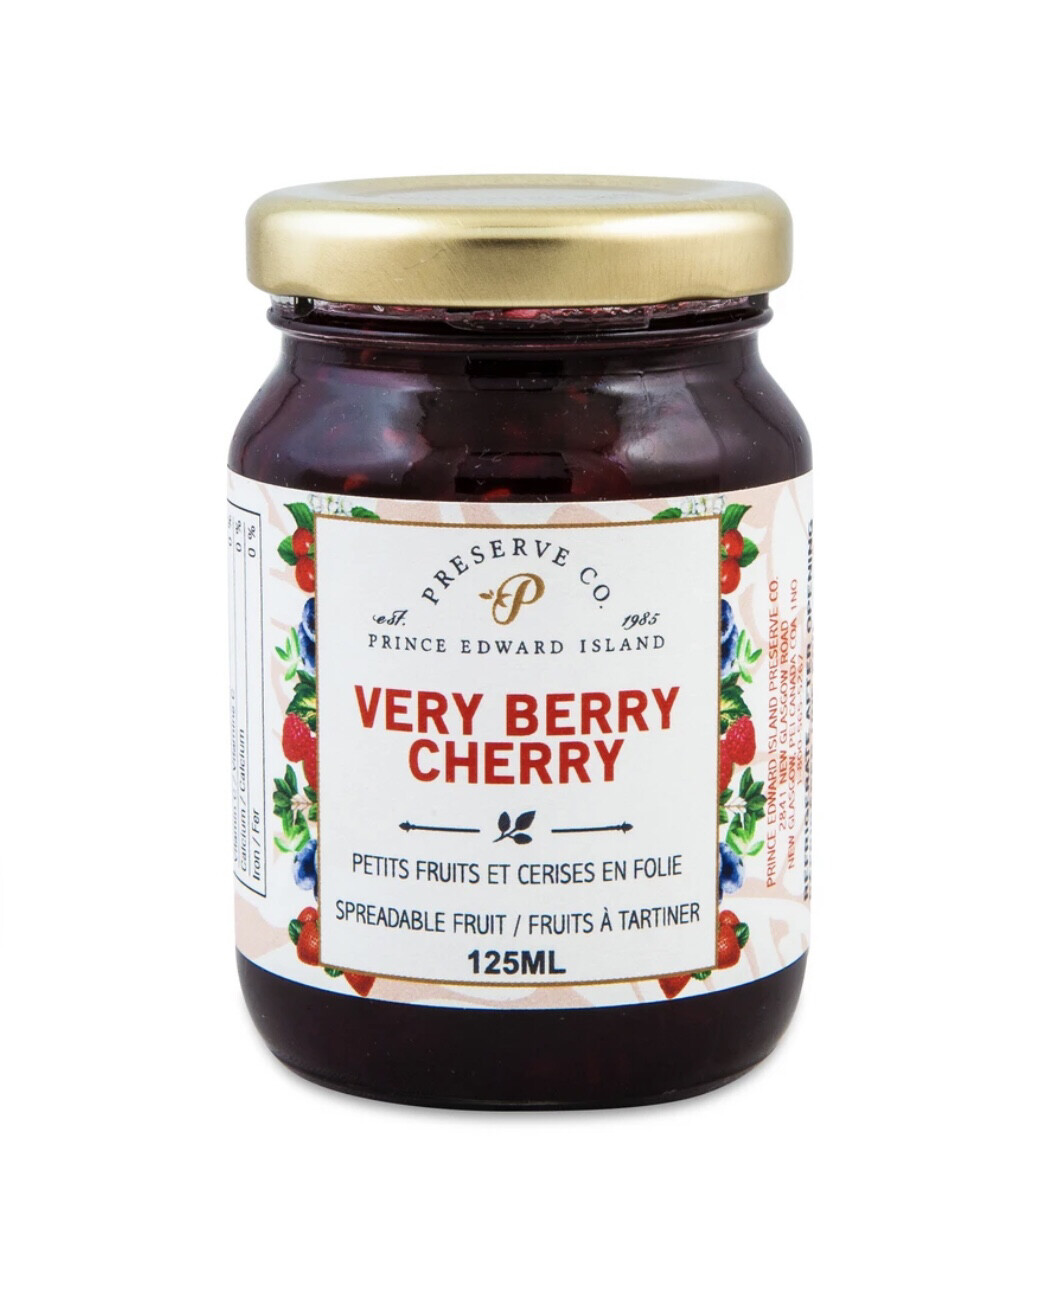 Very Berry Cherry, 125ml, PEI